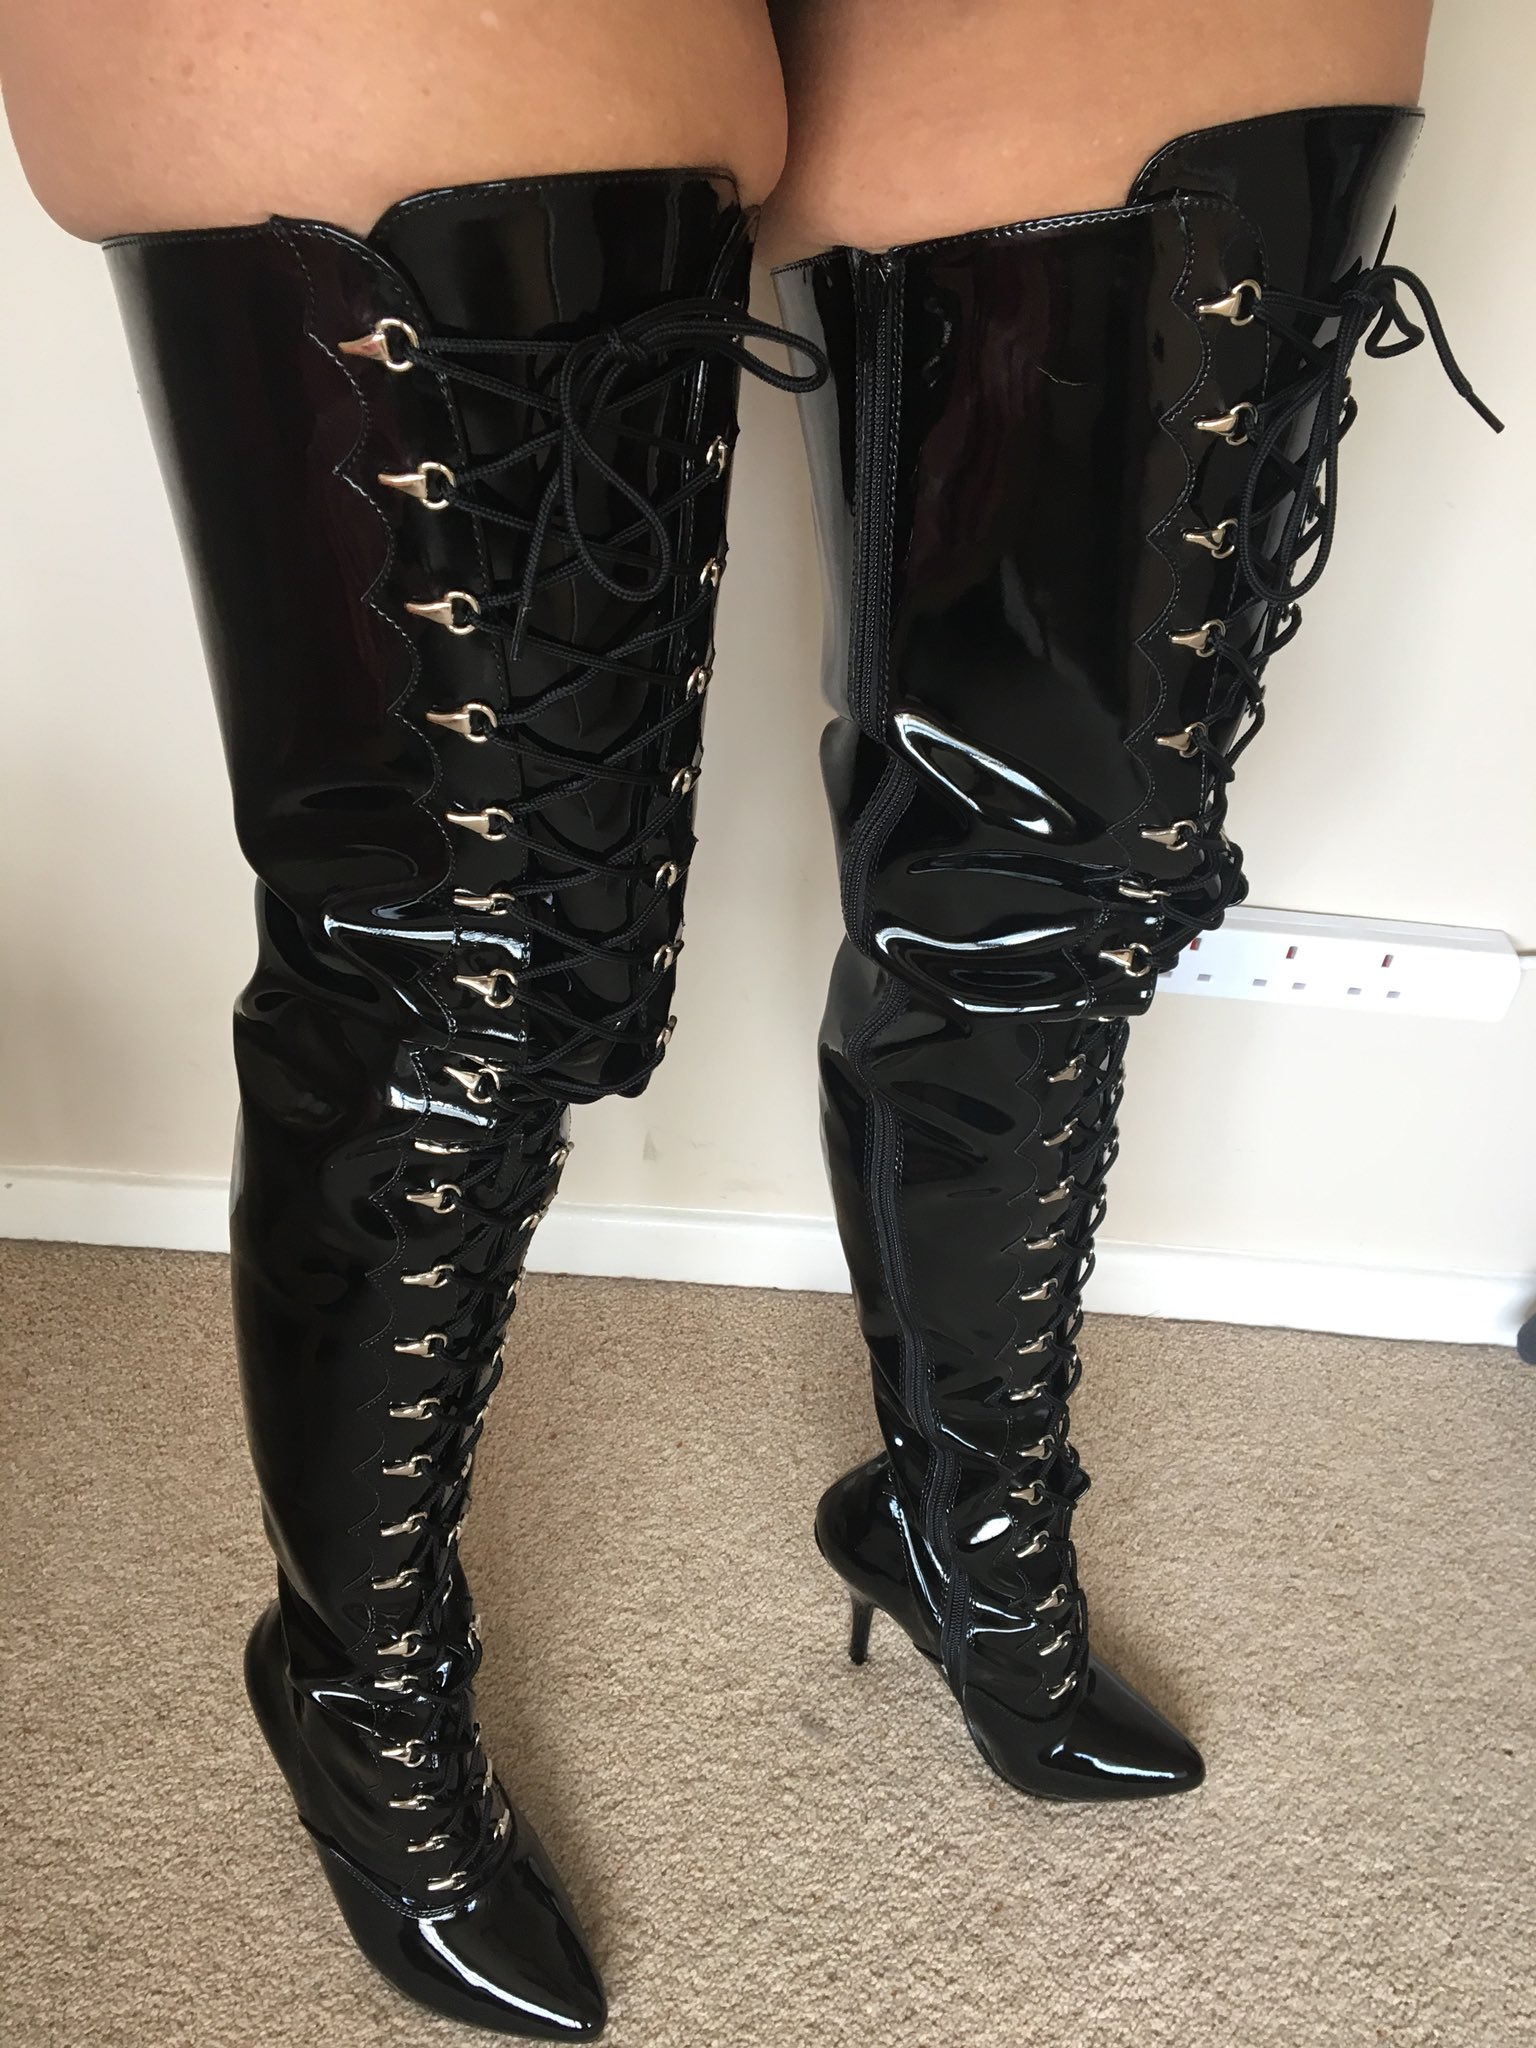 Curvy Claire on Twitter: Wearing these to GGs tonight